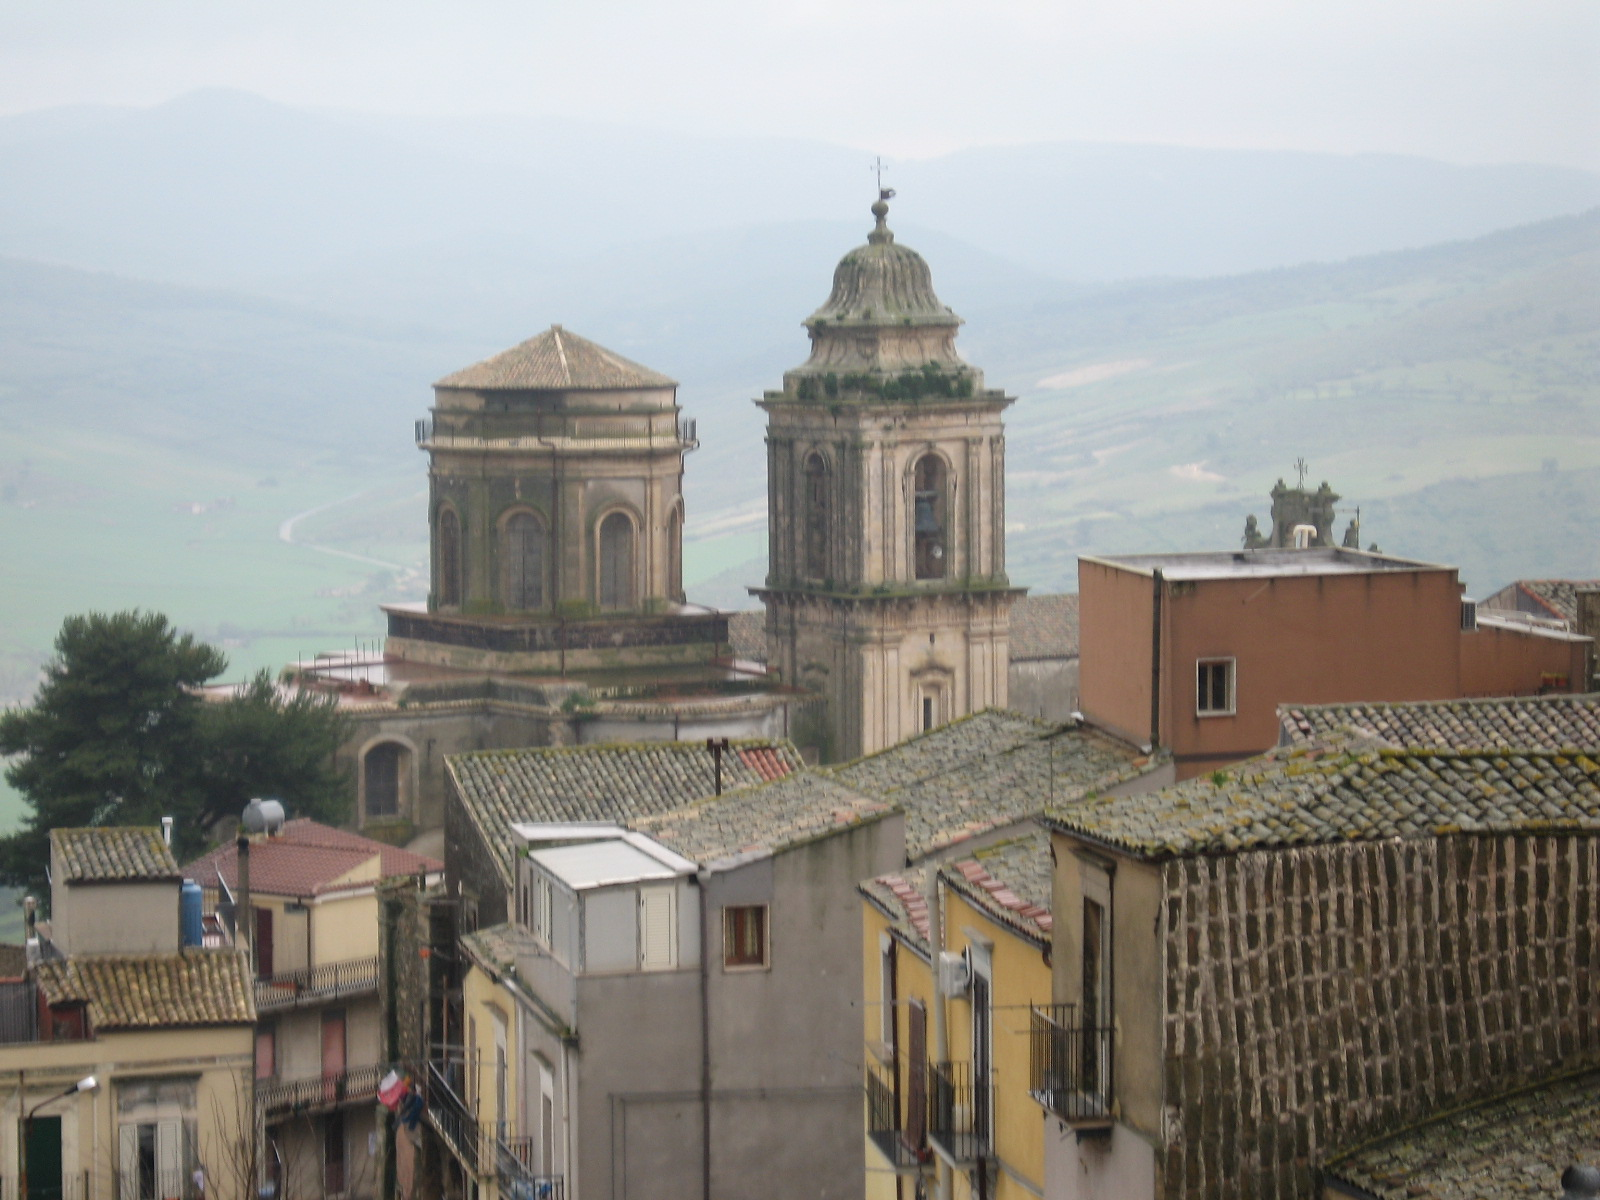 Taken from the area of the Palazzo of the Verga family. (The two tall structures is the IL Campanone Chiesa San Giovanni.)